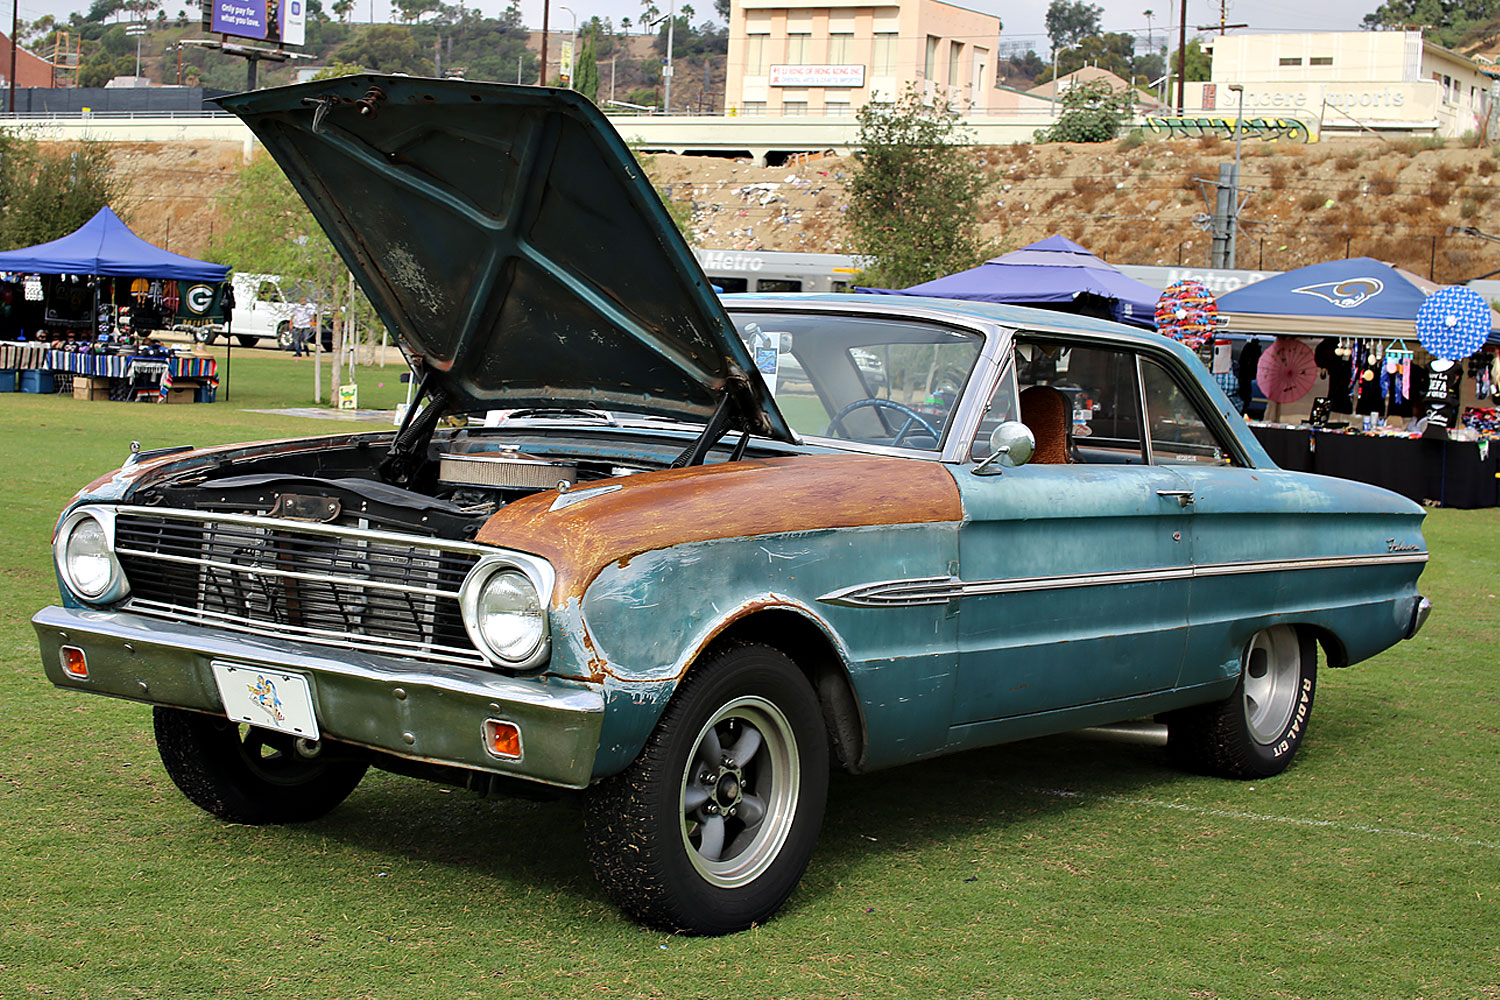 so-cal-falcons-classics-in-the-park-2018-65bbq-4.jpg